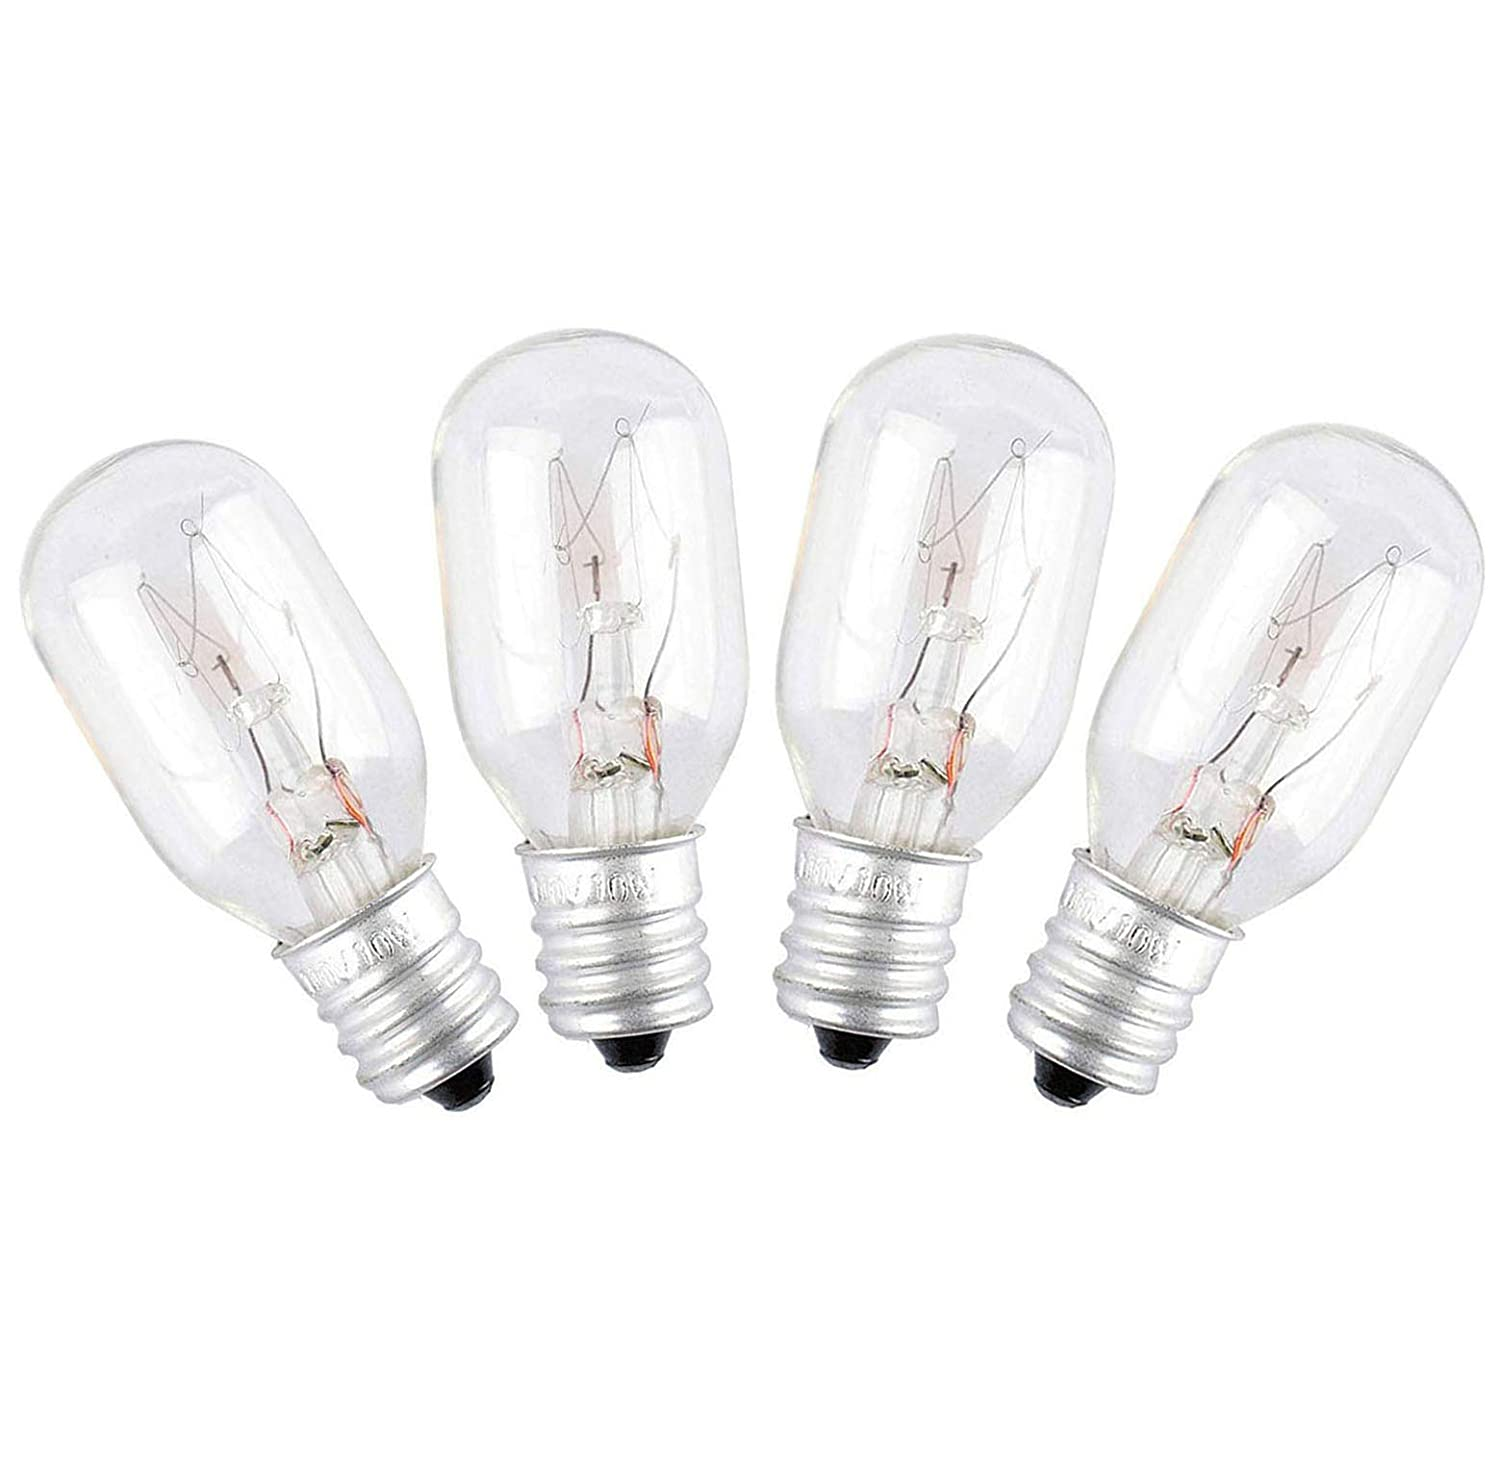 WE4M305 Dryer Light Bulb for GE/General Electric 120v 10watt Appliance Bulb (4 pack)